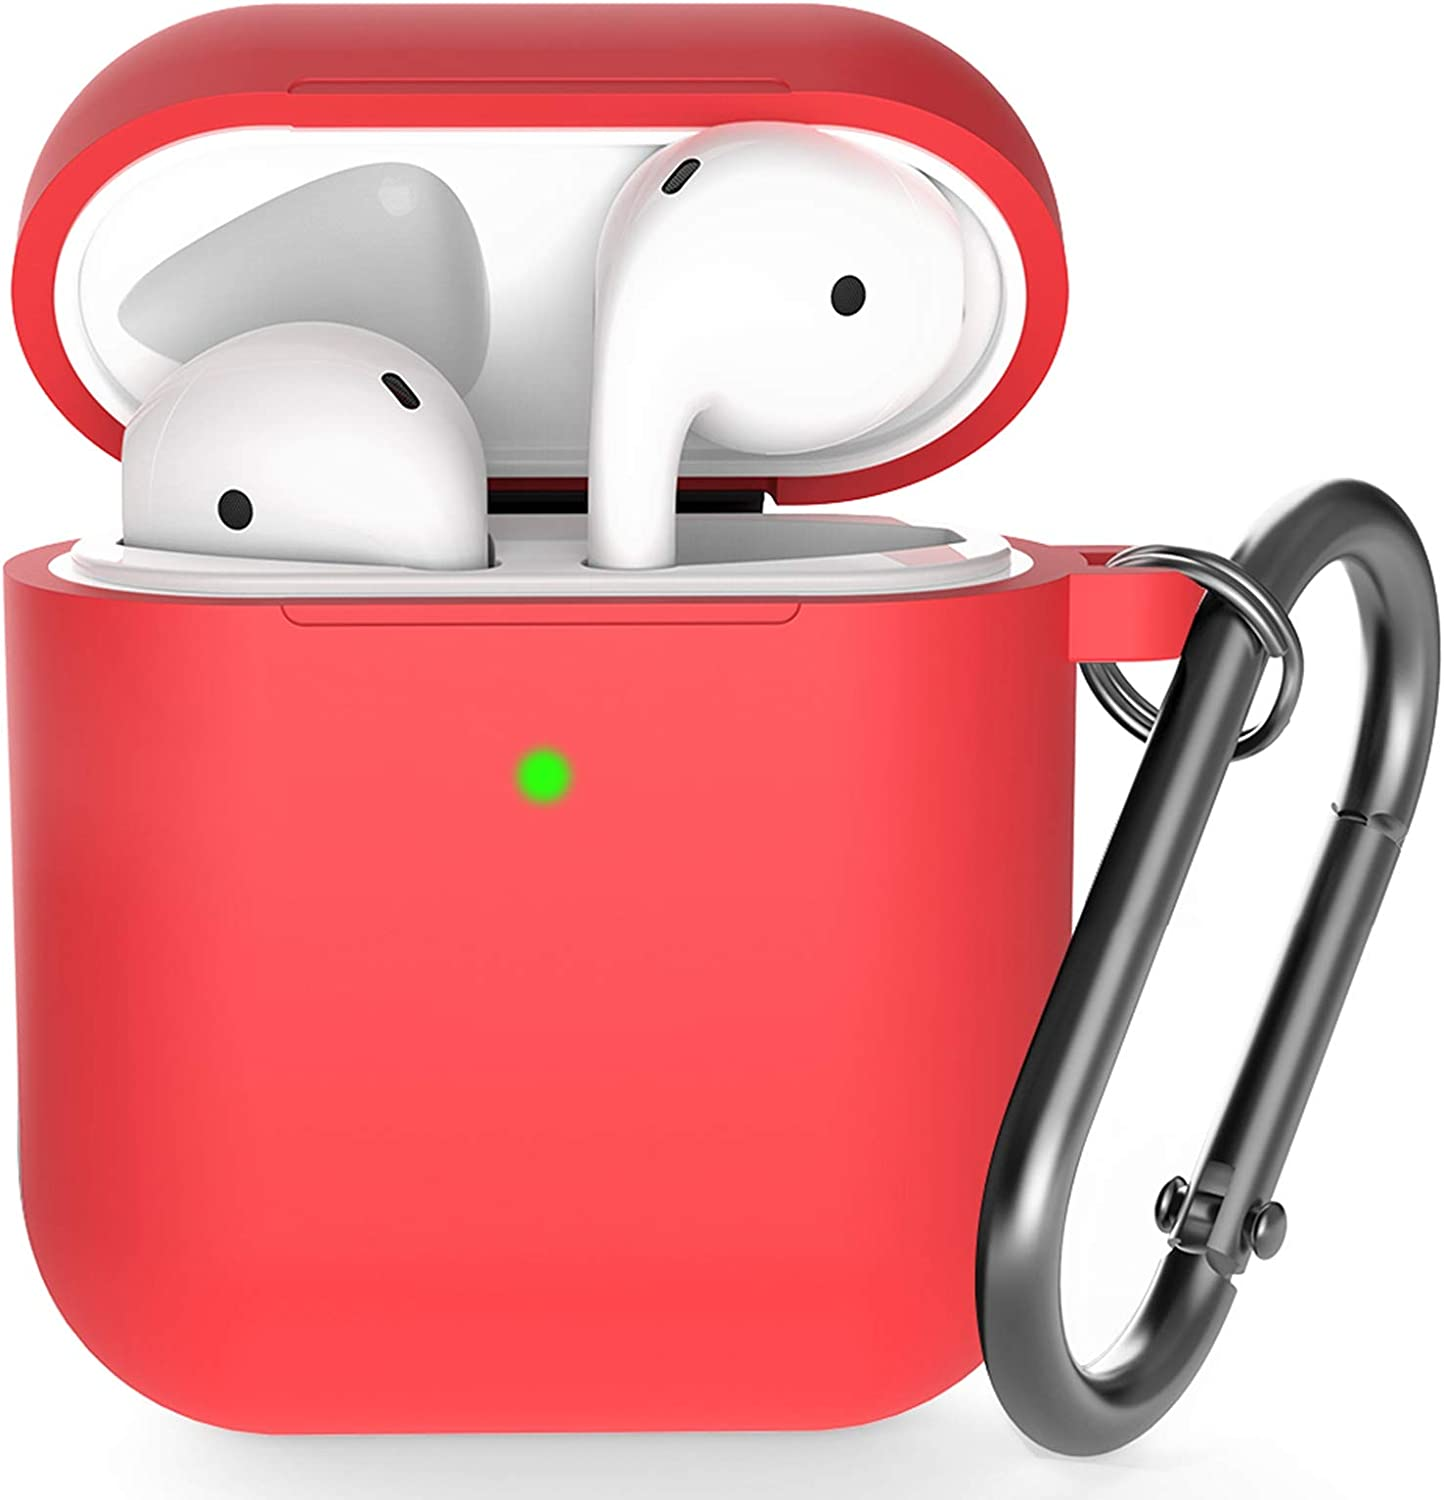 Airpods Case , BELONGME Airpods Silicone Case Cover with Keychain, 360°Protective AirPods Accessories Kits Shockproof Airpods Case Compatible with Apple Airpods 2 &1 (Front LED Visible)